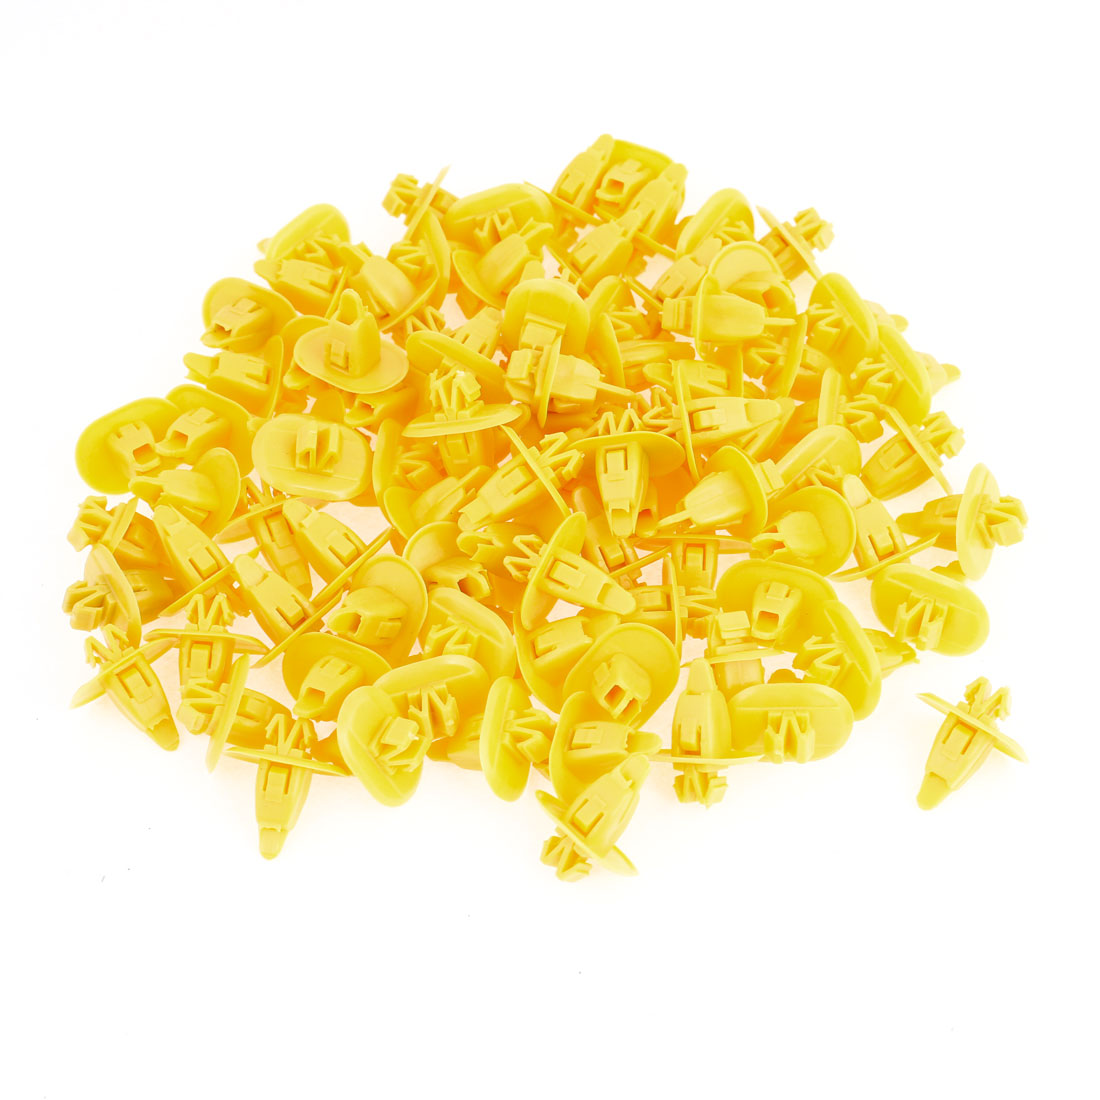 Car Yellow 10mm Hole Bumper Fender Plastic Rivets Screw Fasteners 100 Pcs